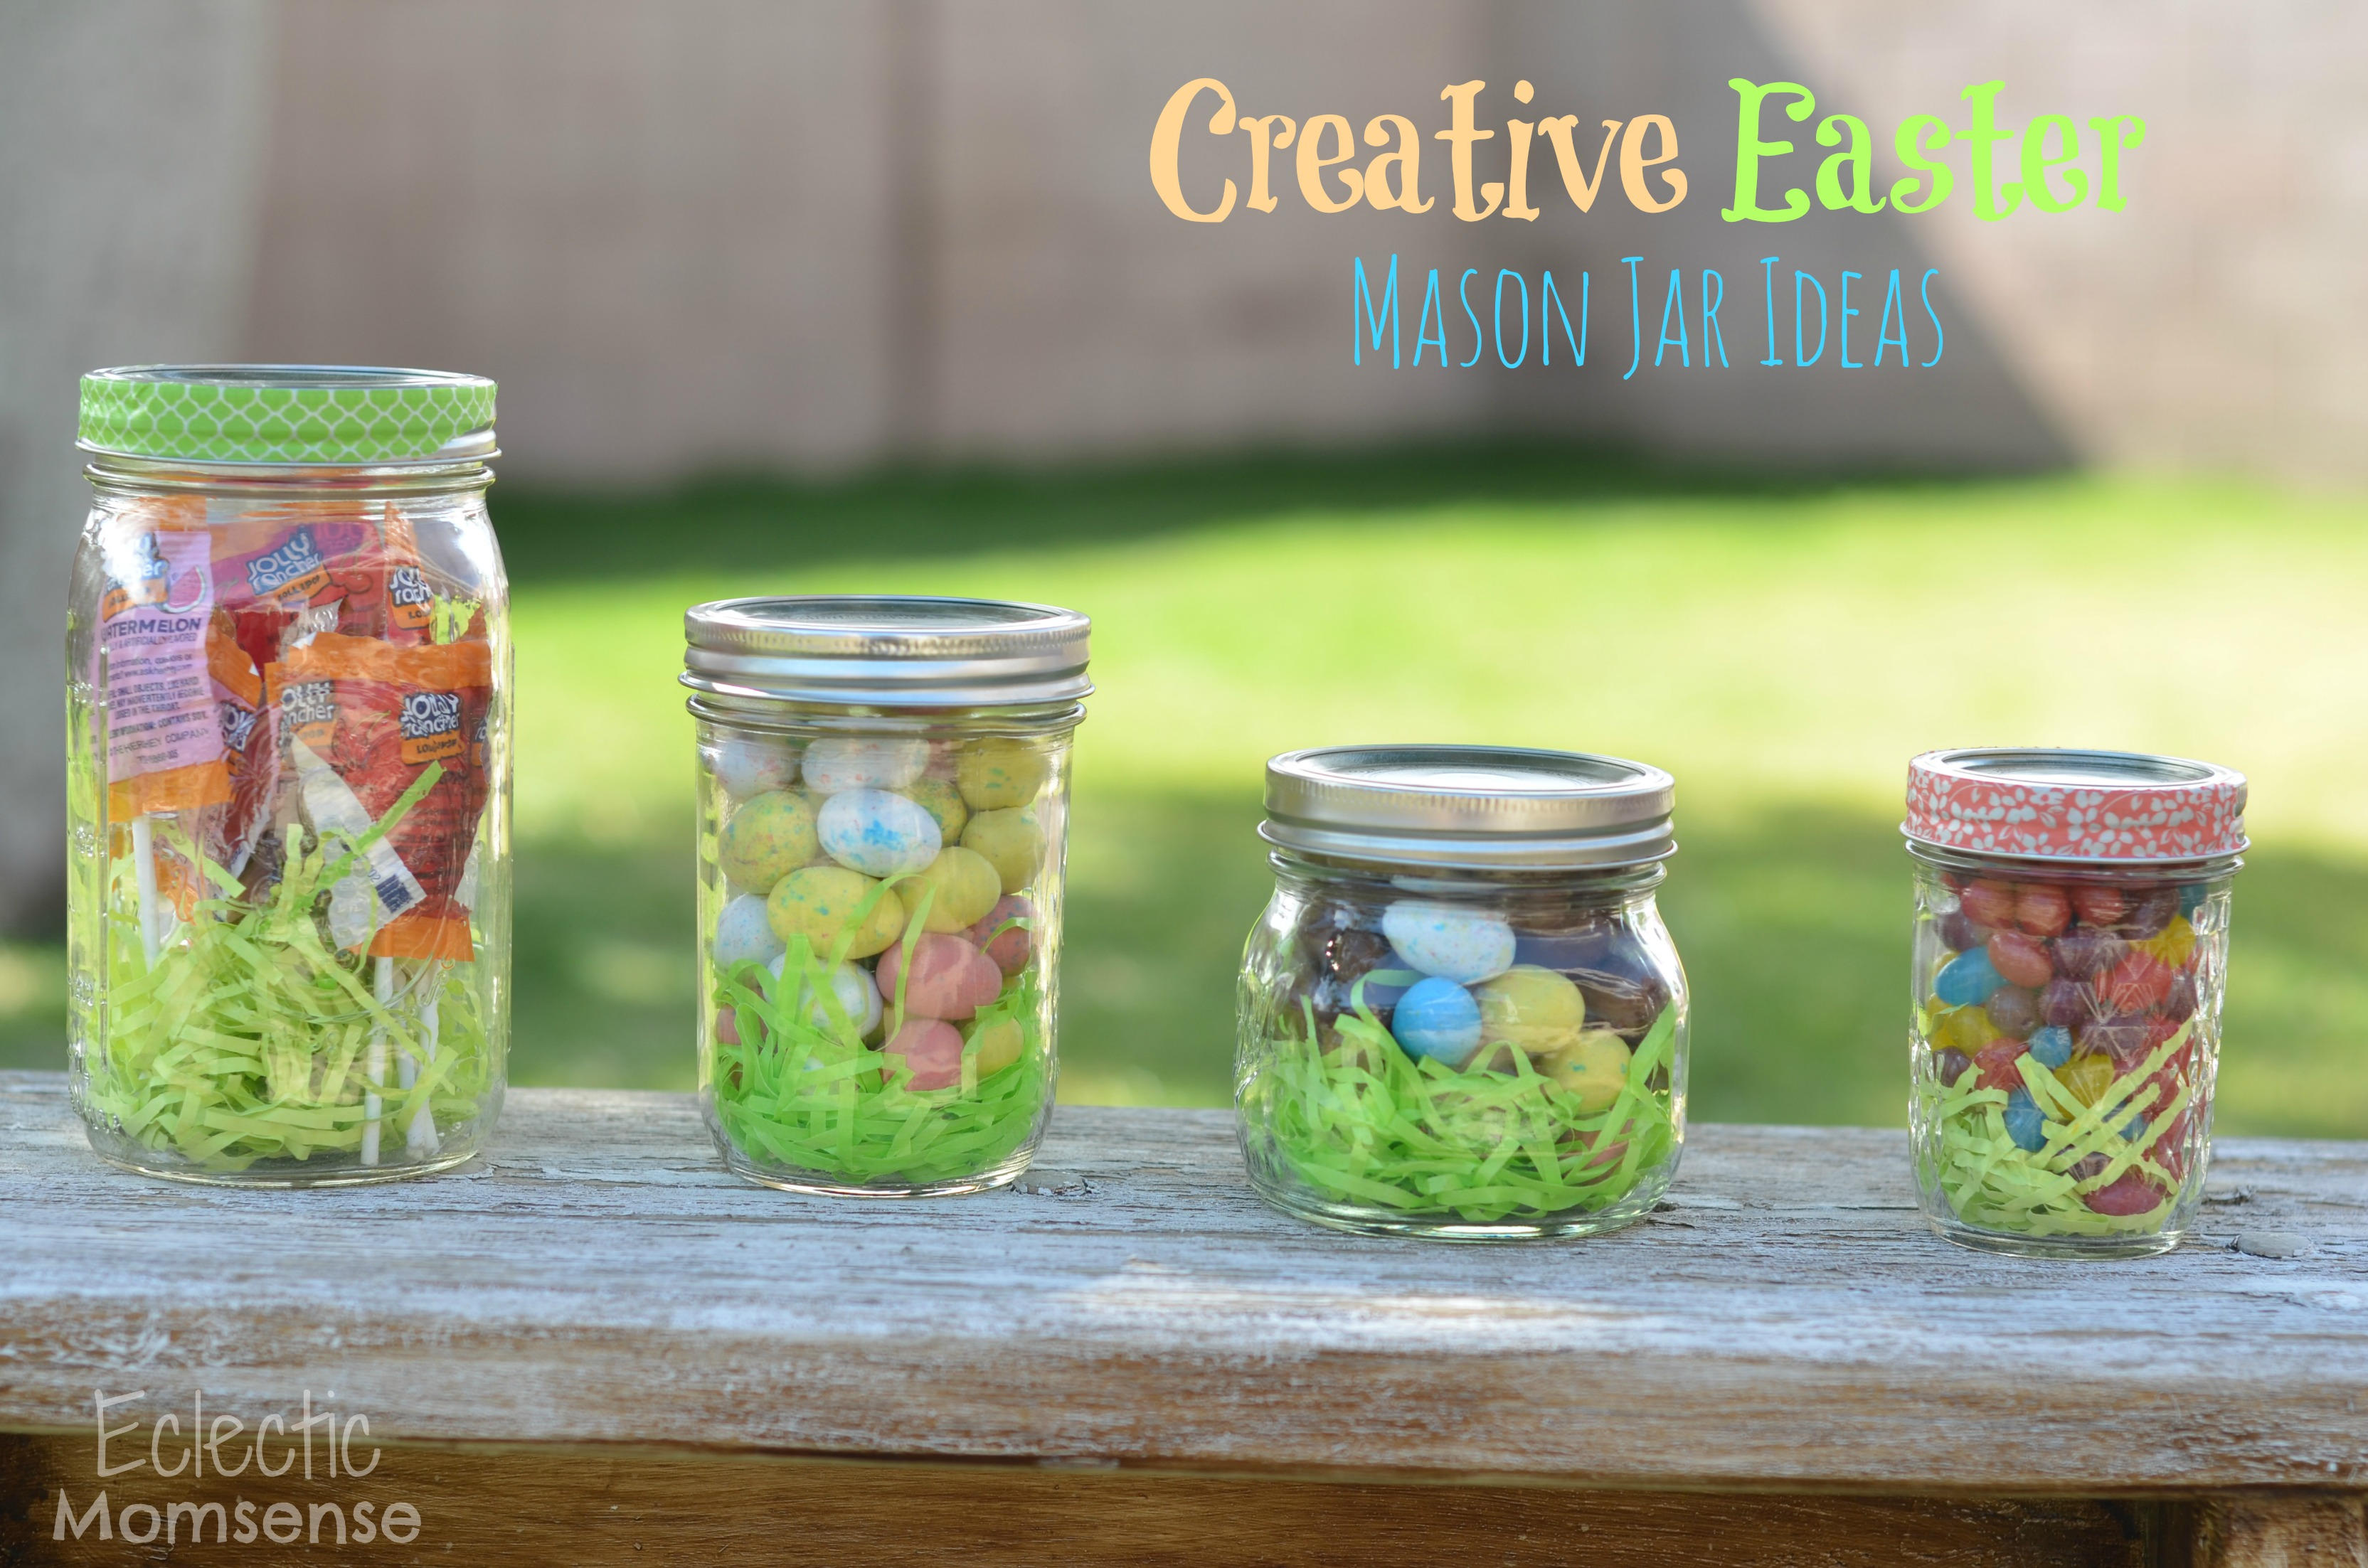 Creative Easter Mason Jar Ideas A Giveaway Eclectic Momsense